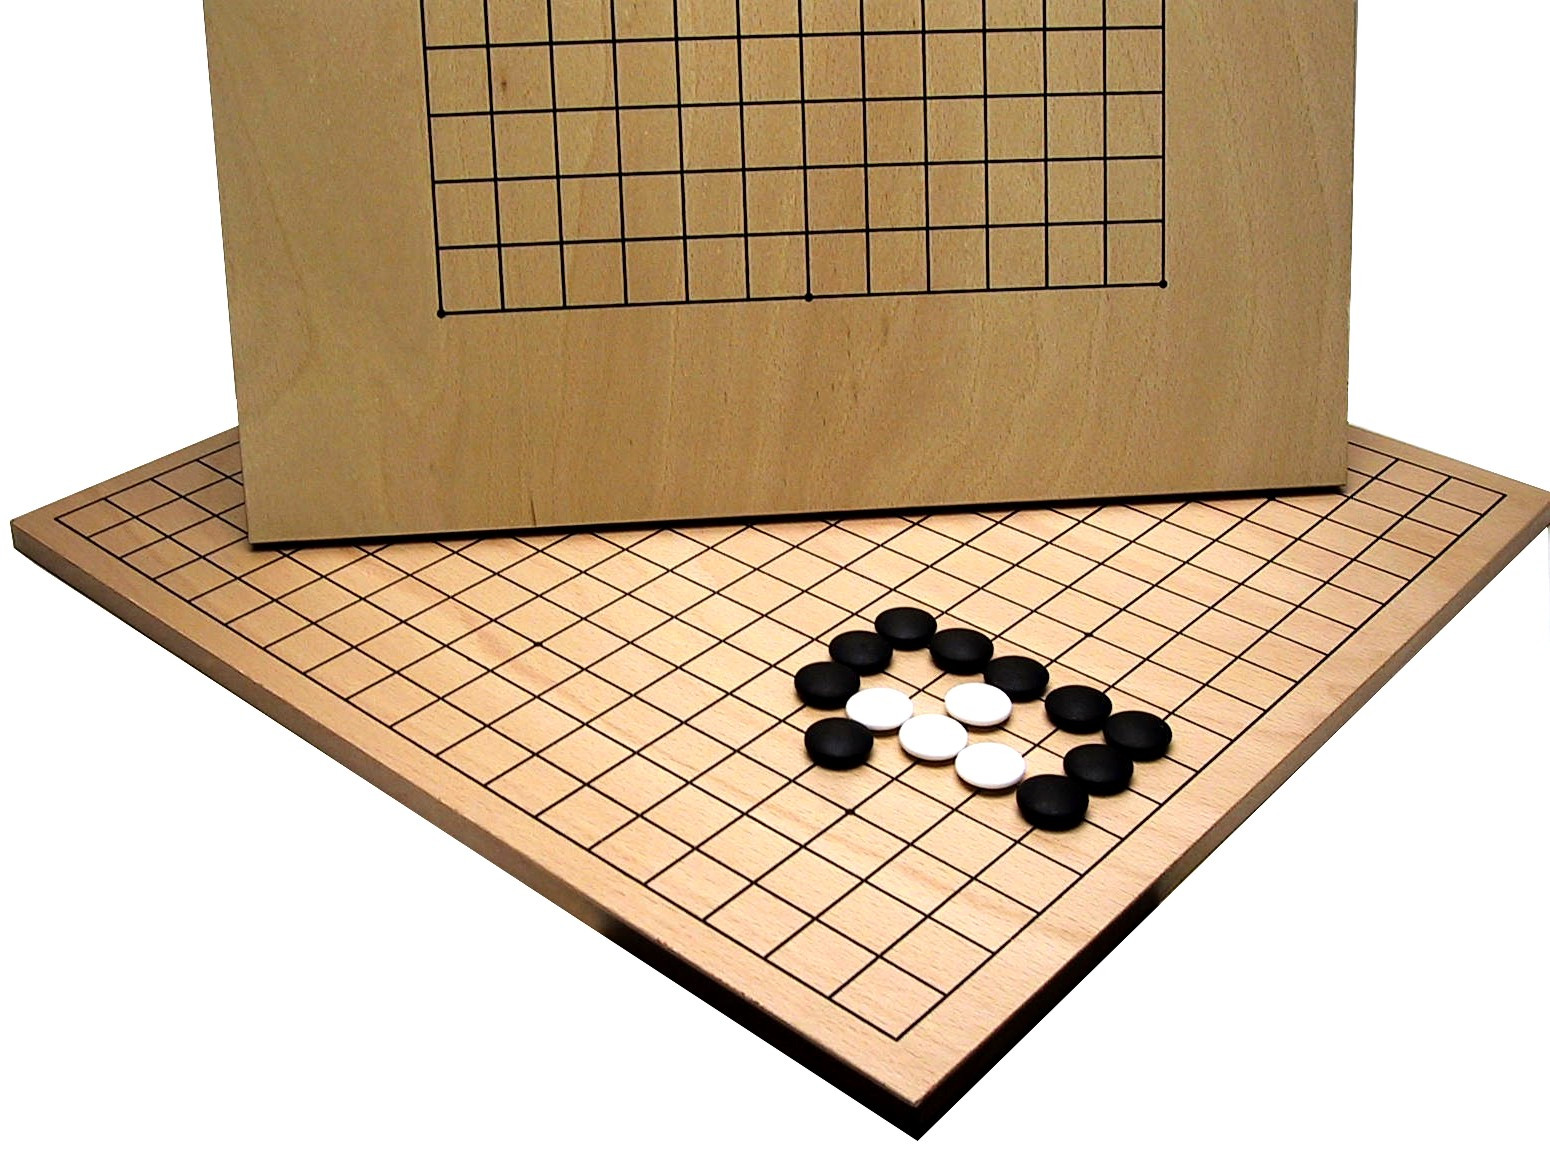 Doubled sided Go Board